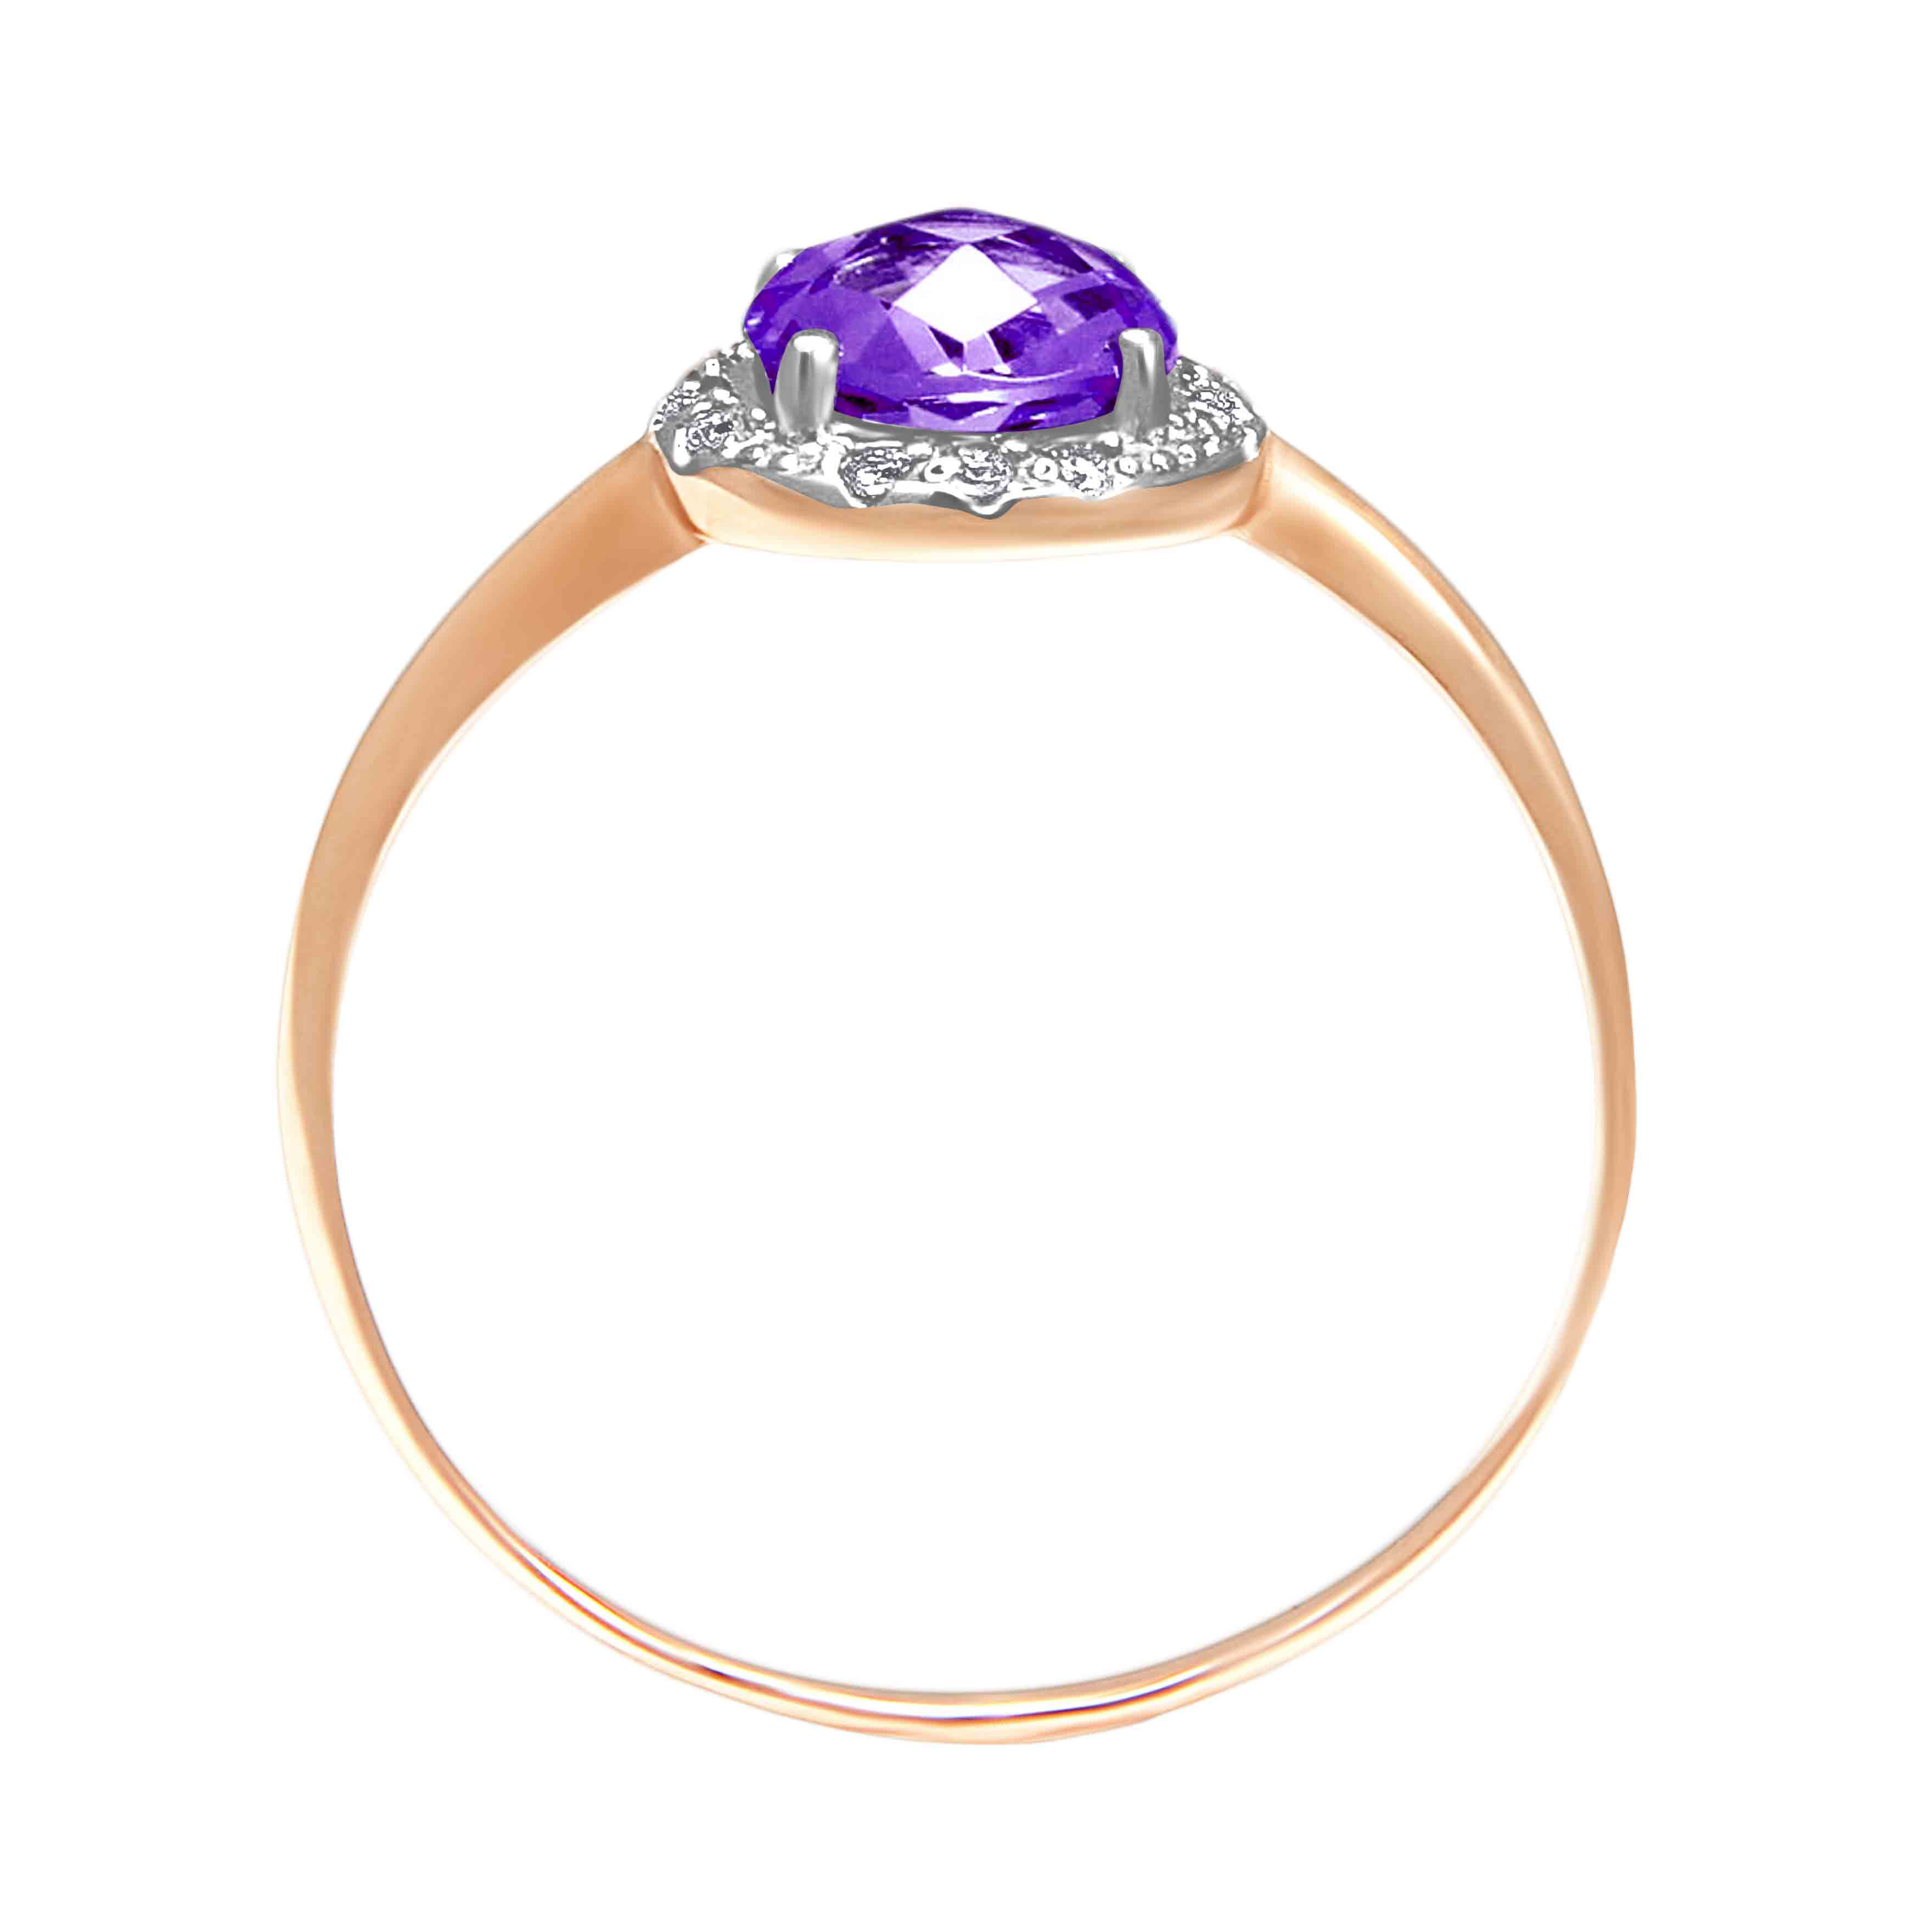 Rose-cut Amethyst with CZ Halo Ring. View 3